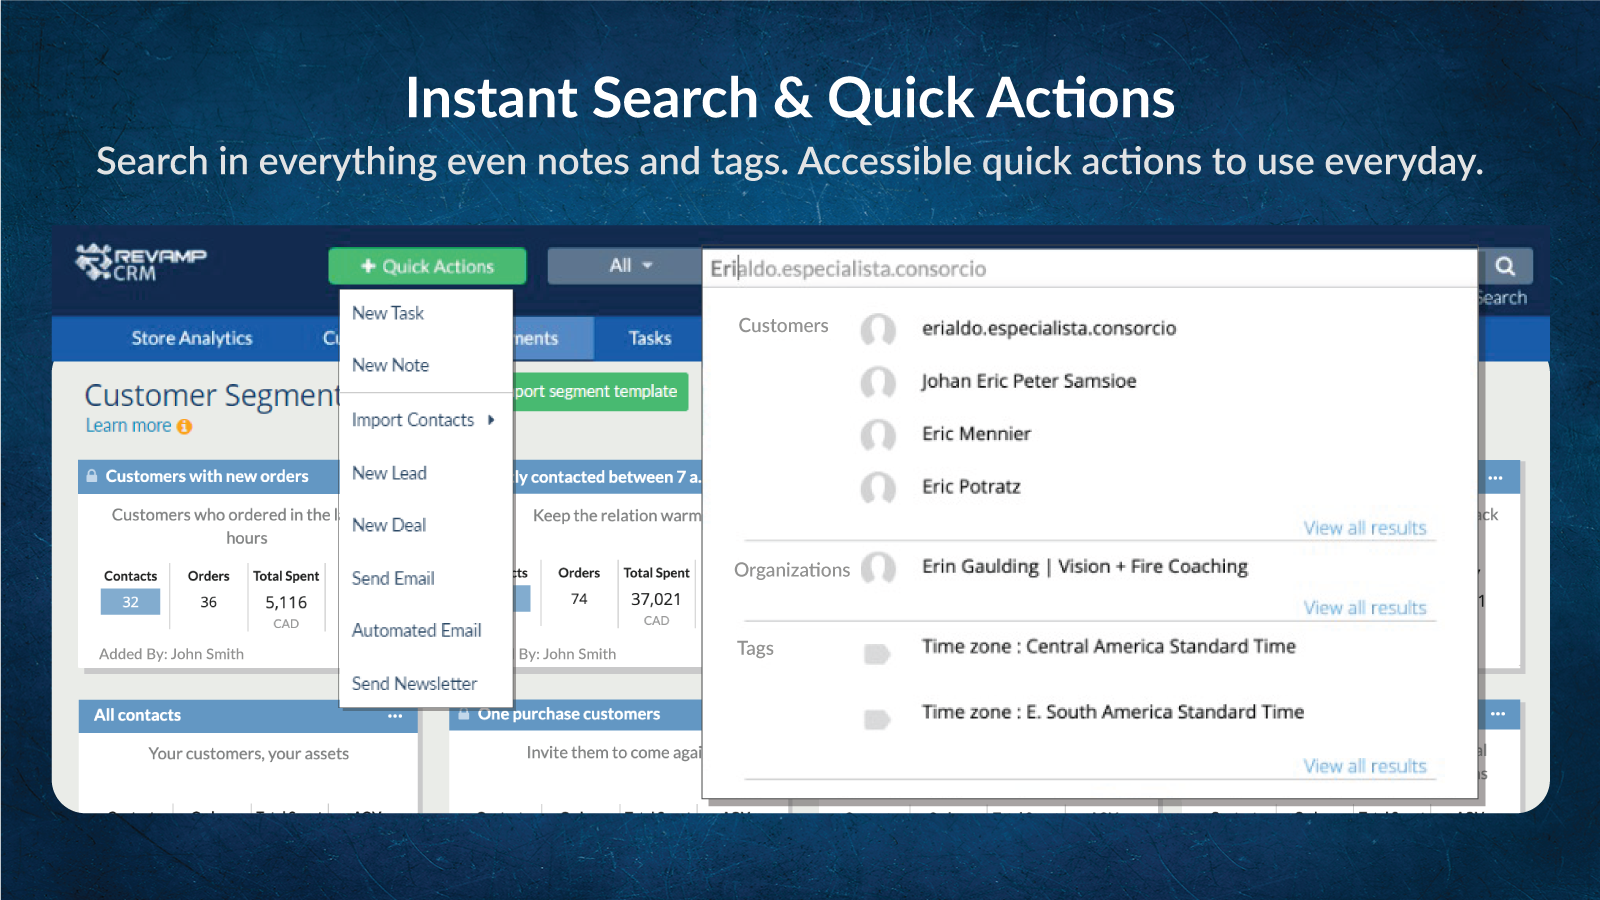 Instant Search & Quick Actions